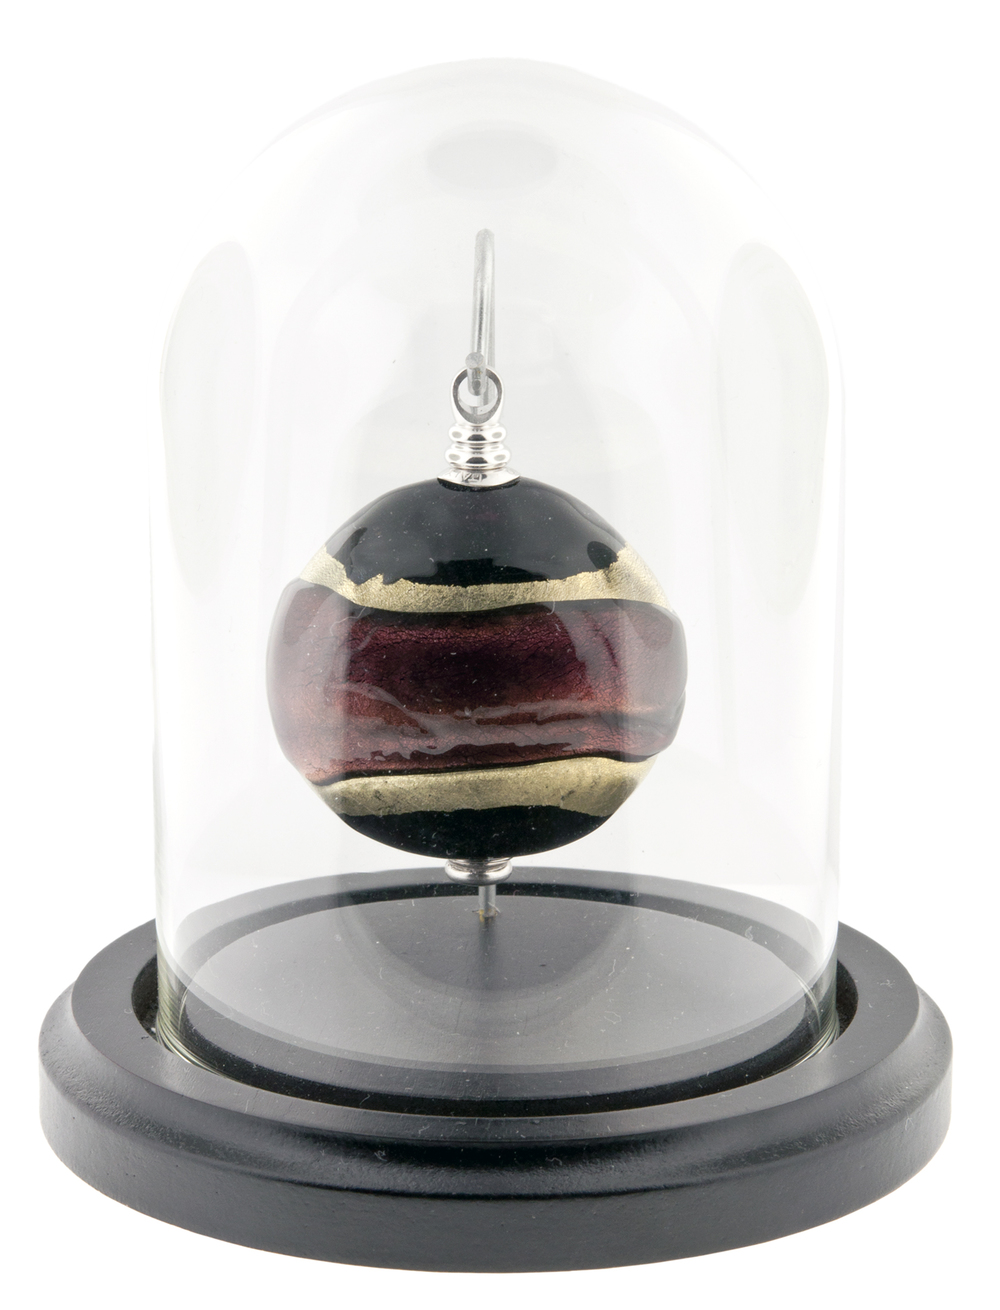 "Gilded Dreams Keepsake   Keepsake: 2"" W x 0.75"" D x 2.3"" H / 0.5 CI  Base and Glass Dome (included): 4"" Dia x 5"" H   $425"